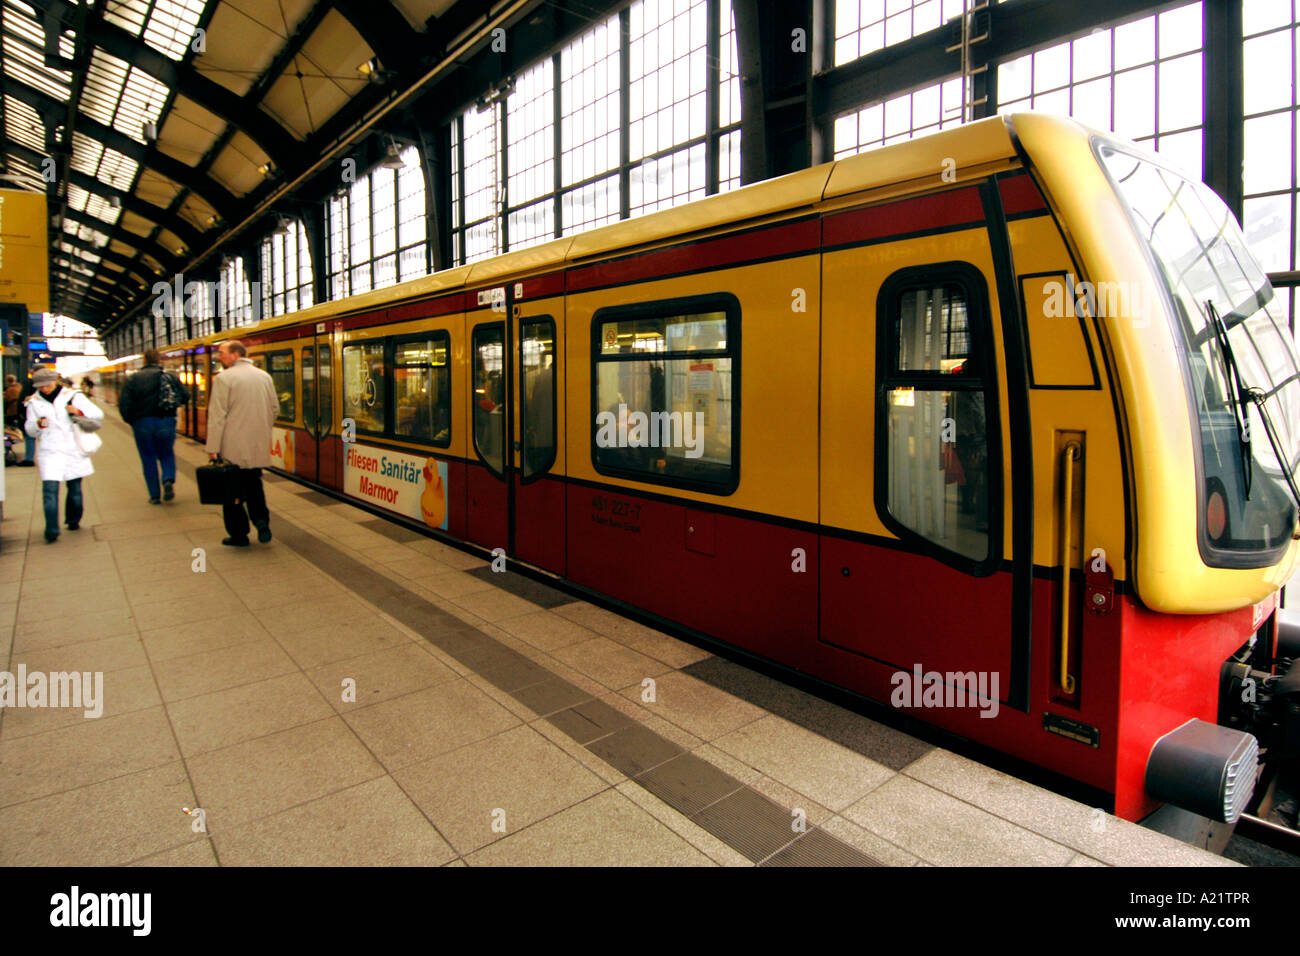 Passengers on the platform of the S Bahn train in East Berlin. Stock Photo